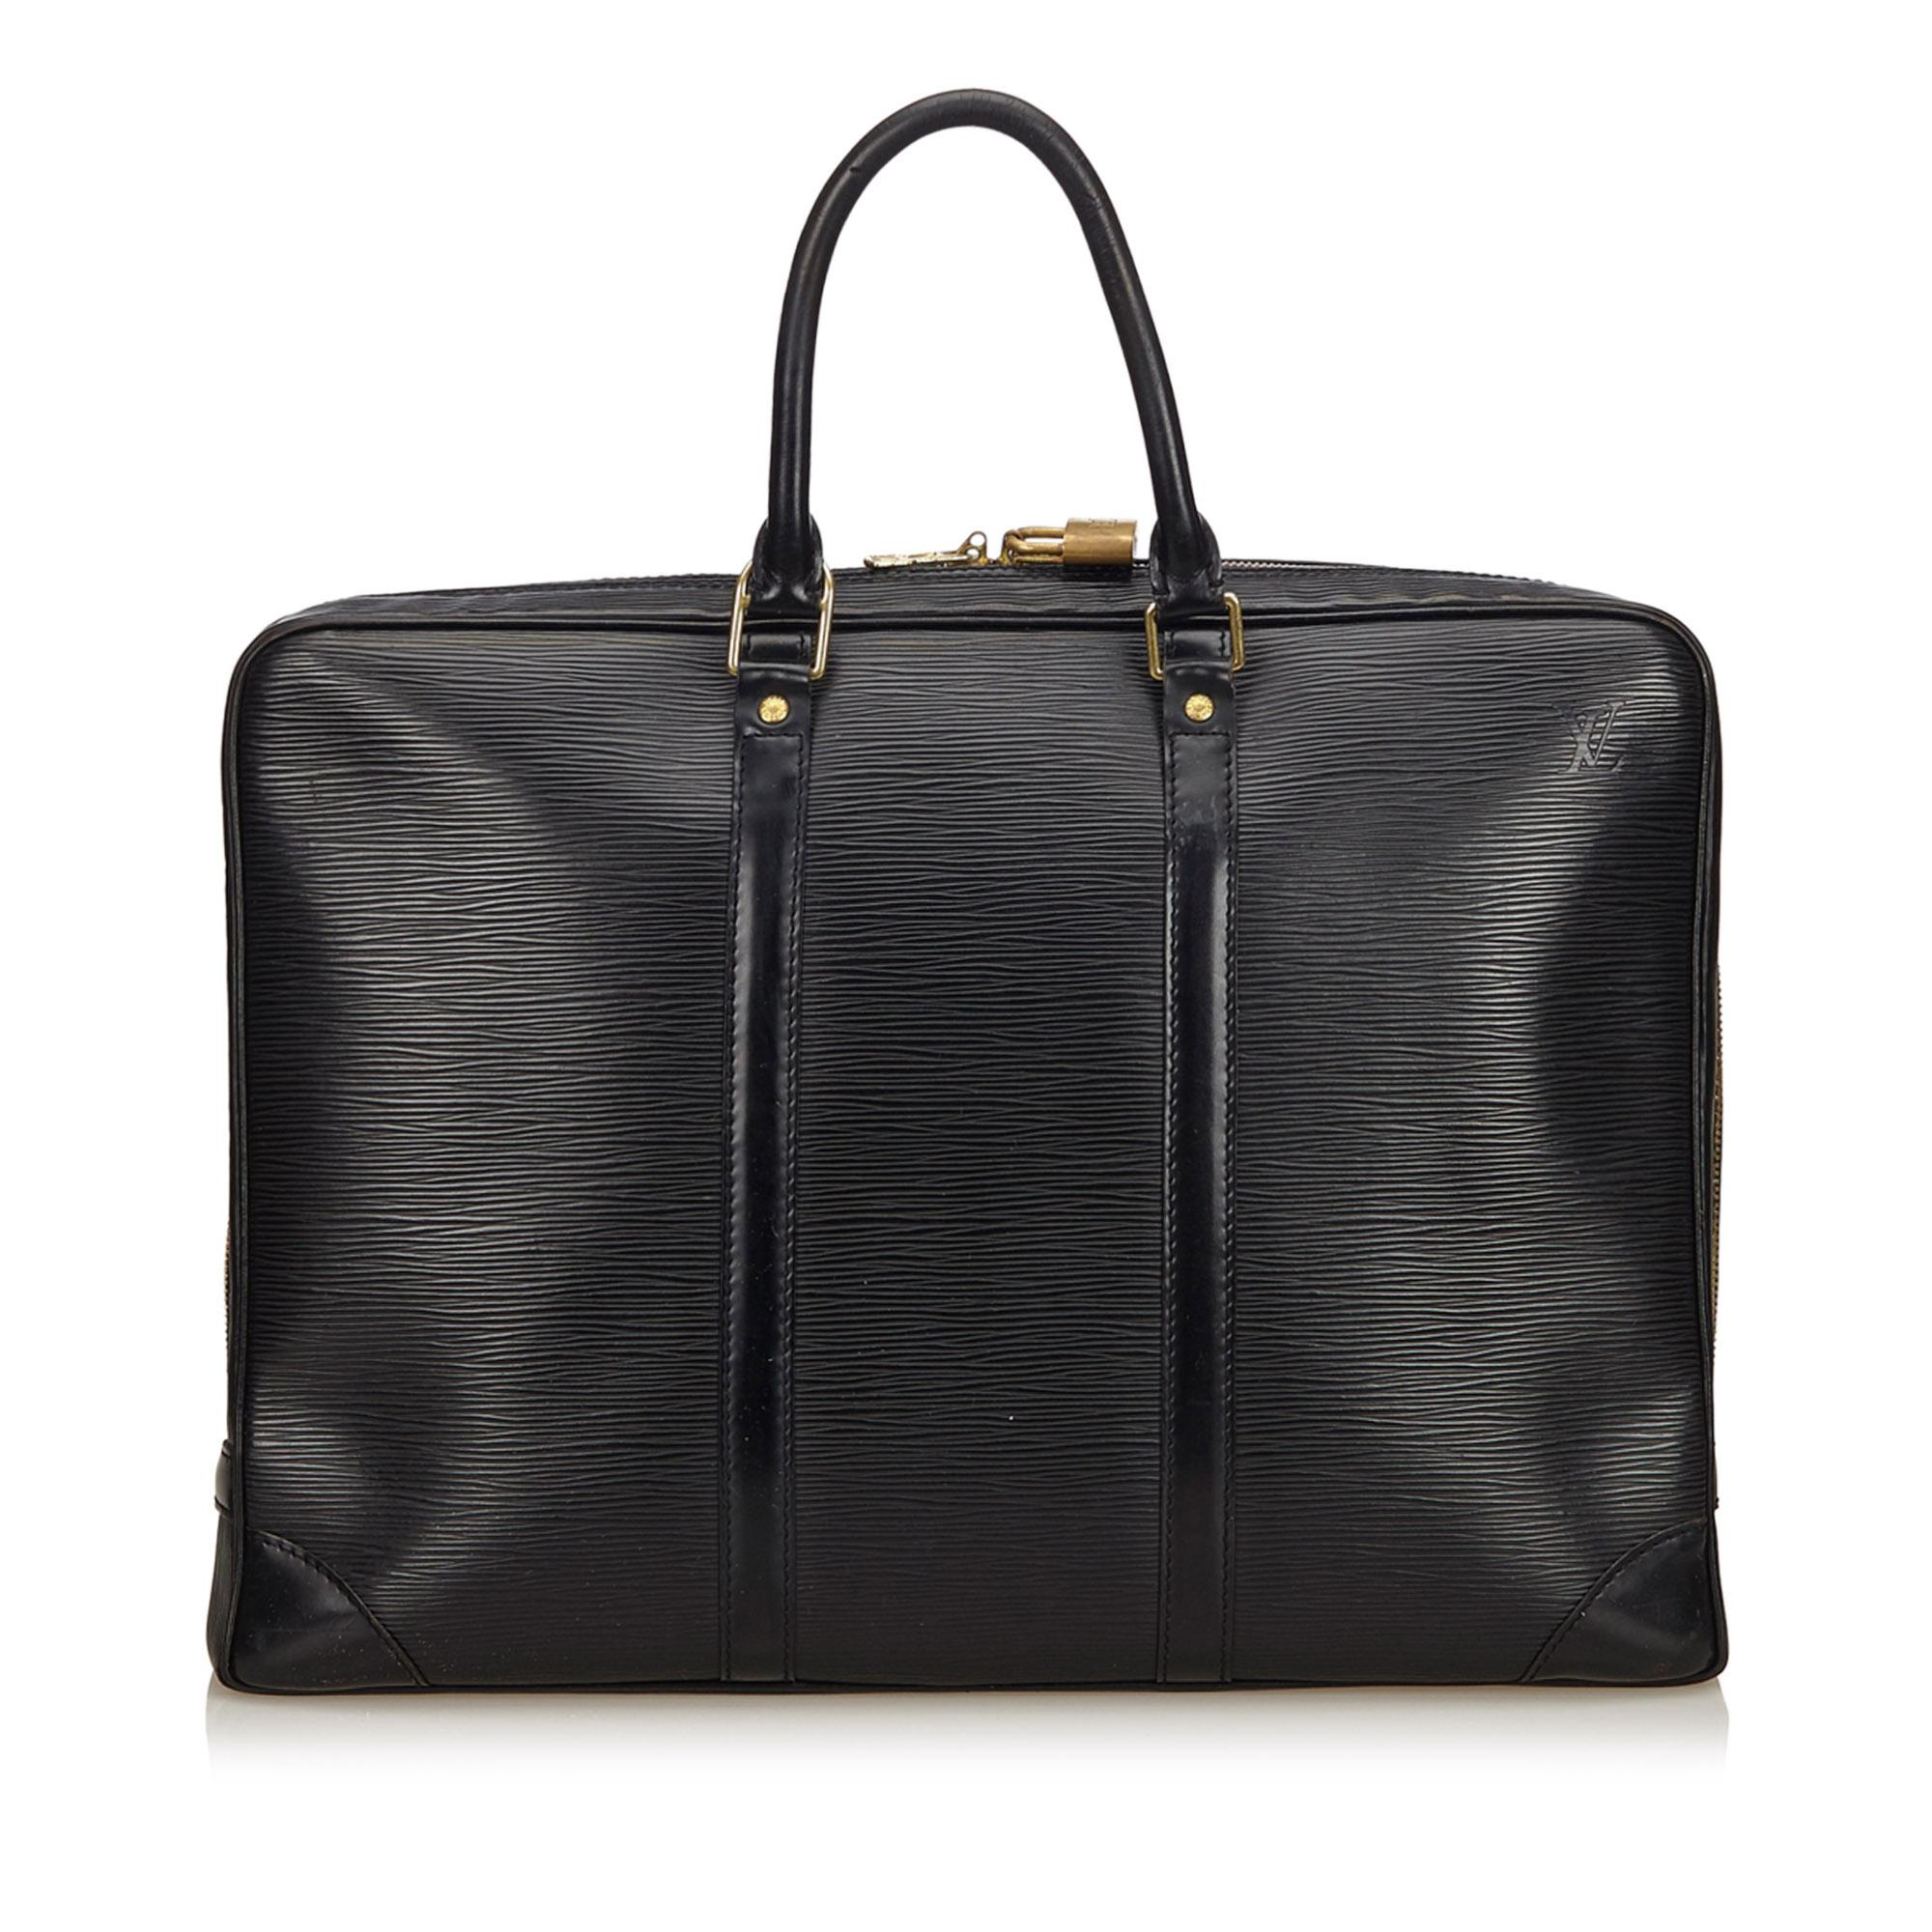 Lyst - Louis Vuitton Epi Porte Documents Voyage in Black ae85d7e6be8